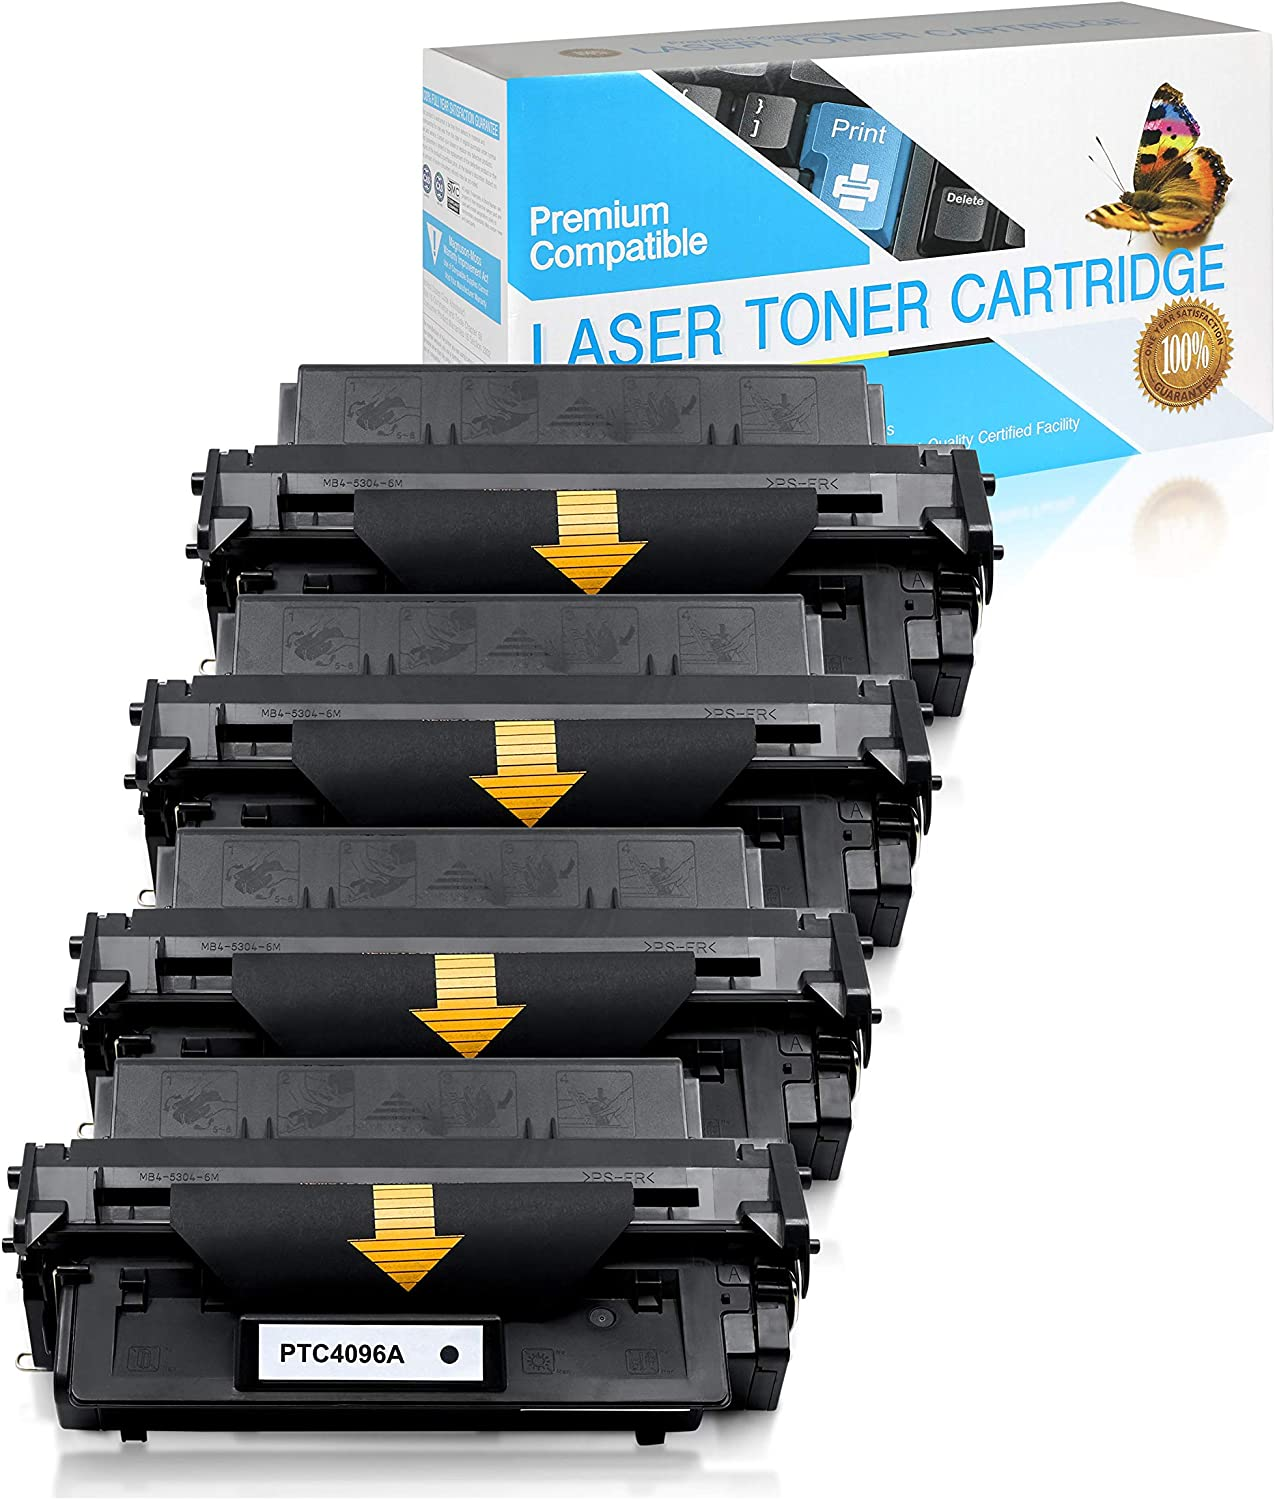 Jumbo Black,1 Pack Q2612A SuppliesOutlet Compatible Toner Cartridge Replacement for HP 12A